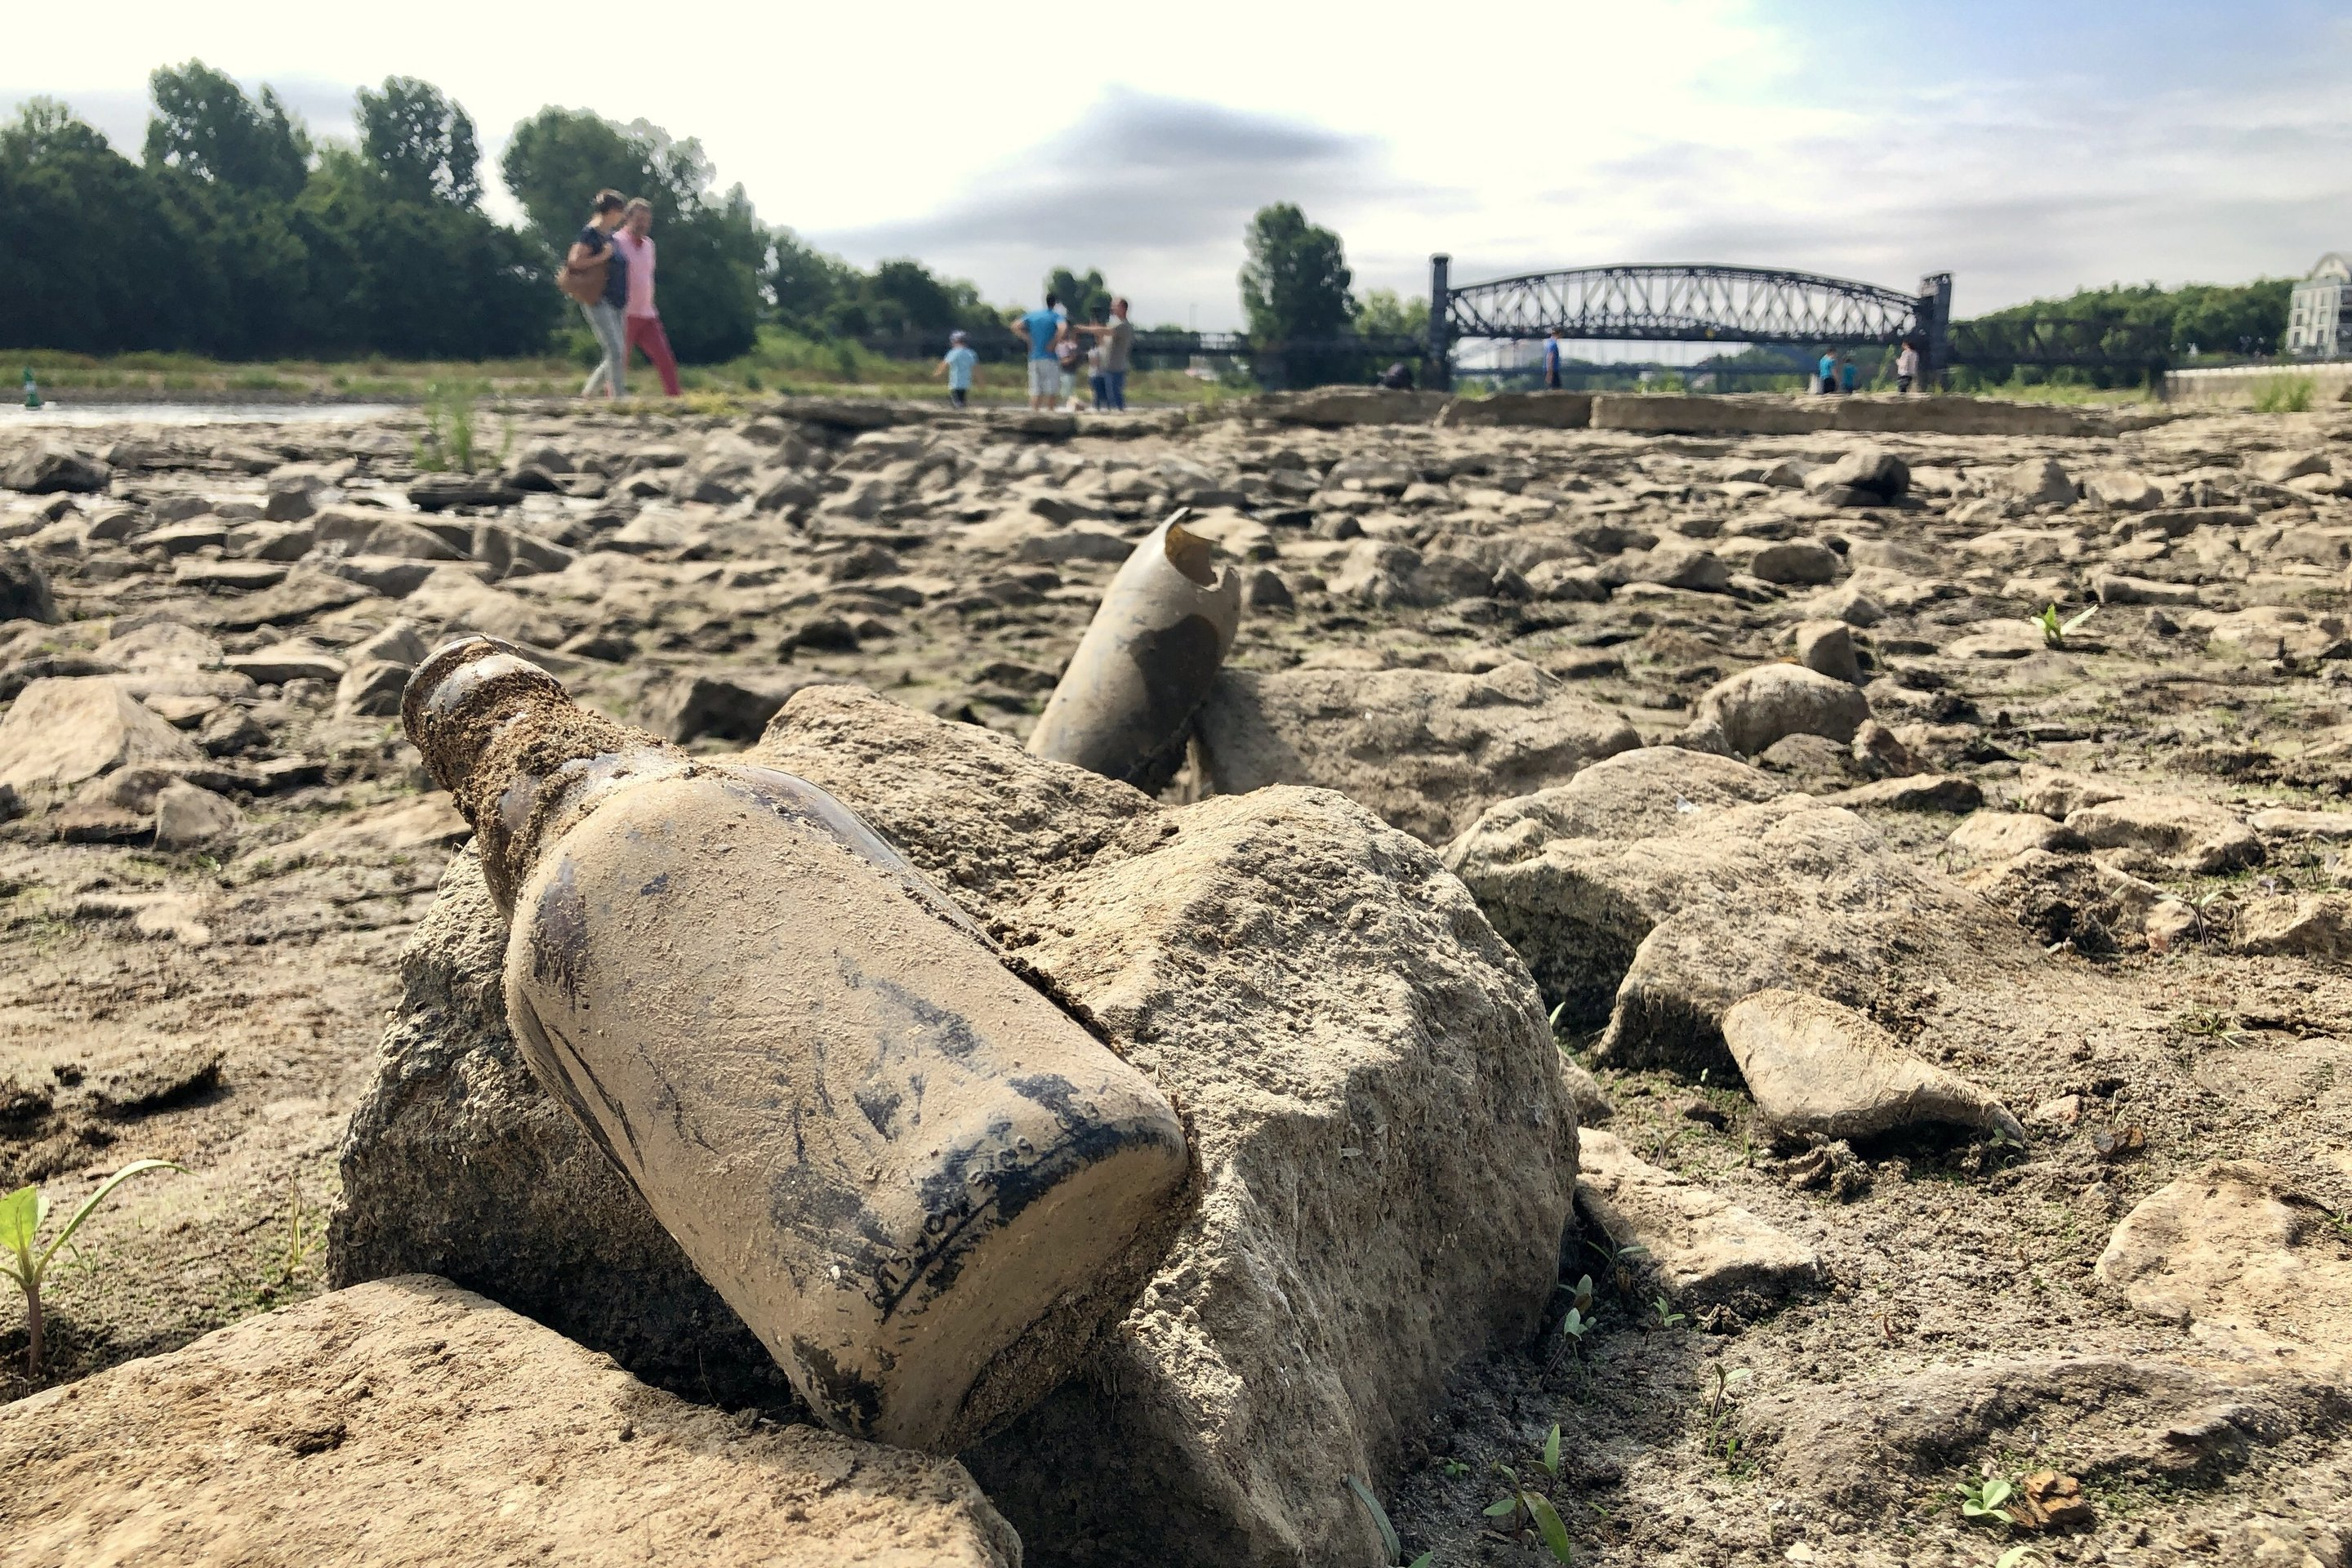 drought affected about 90 of german territory in 2018